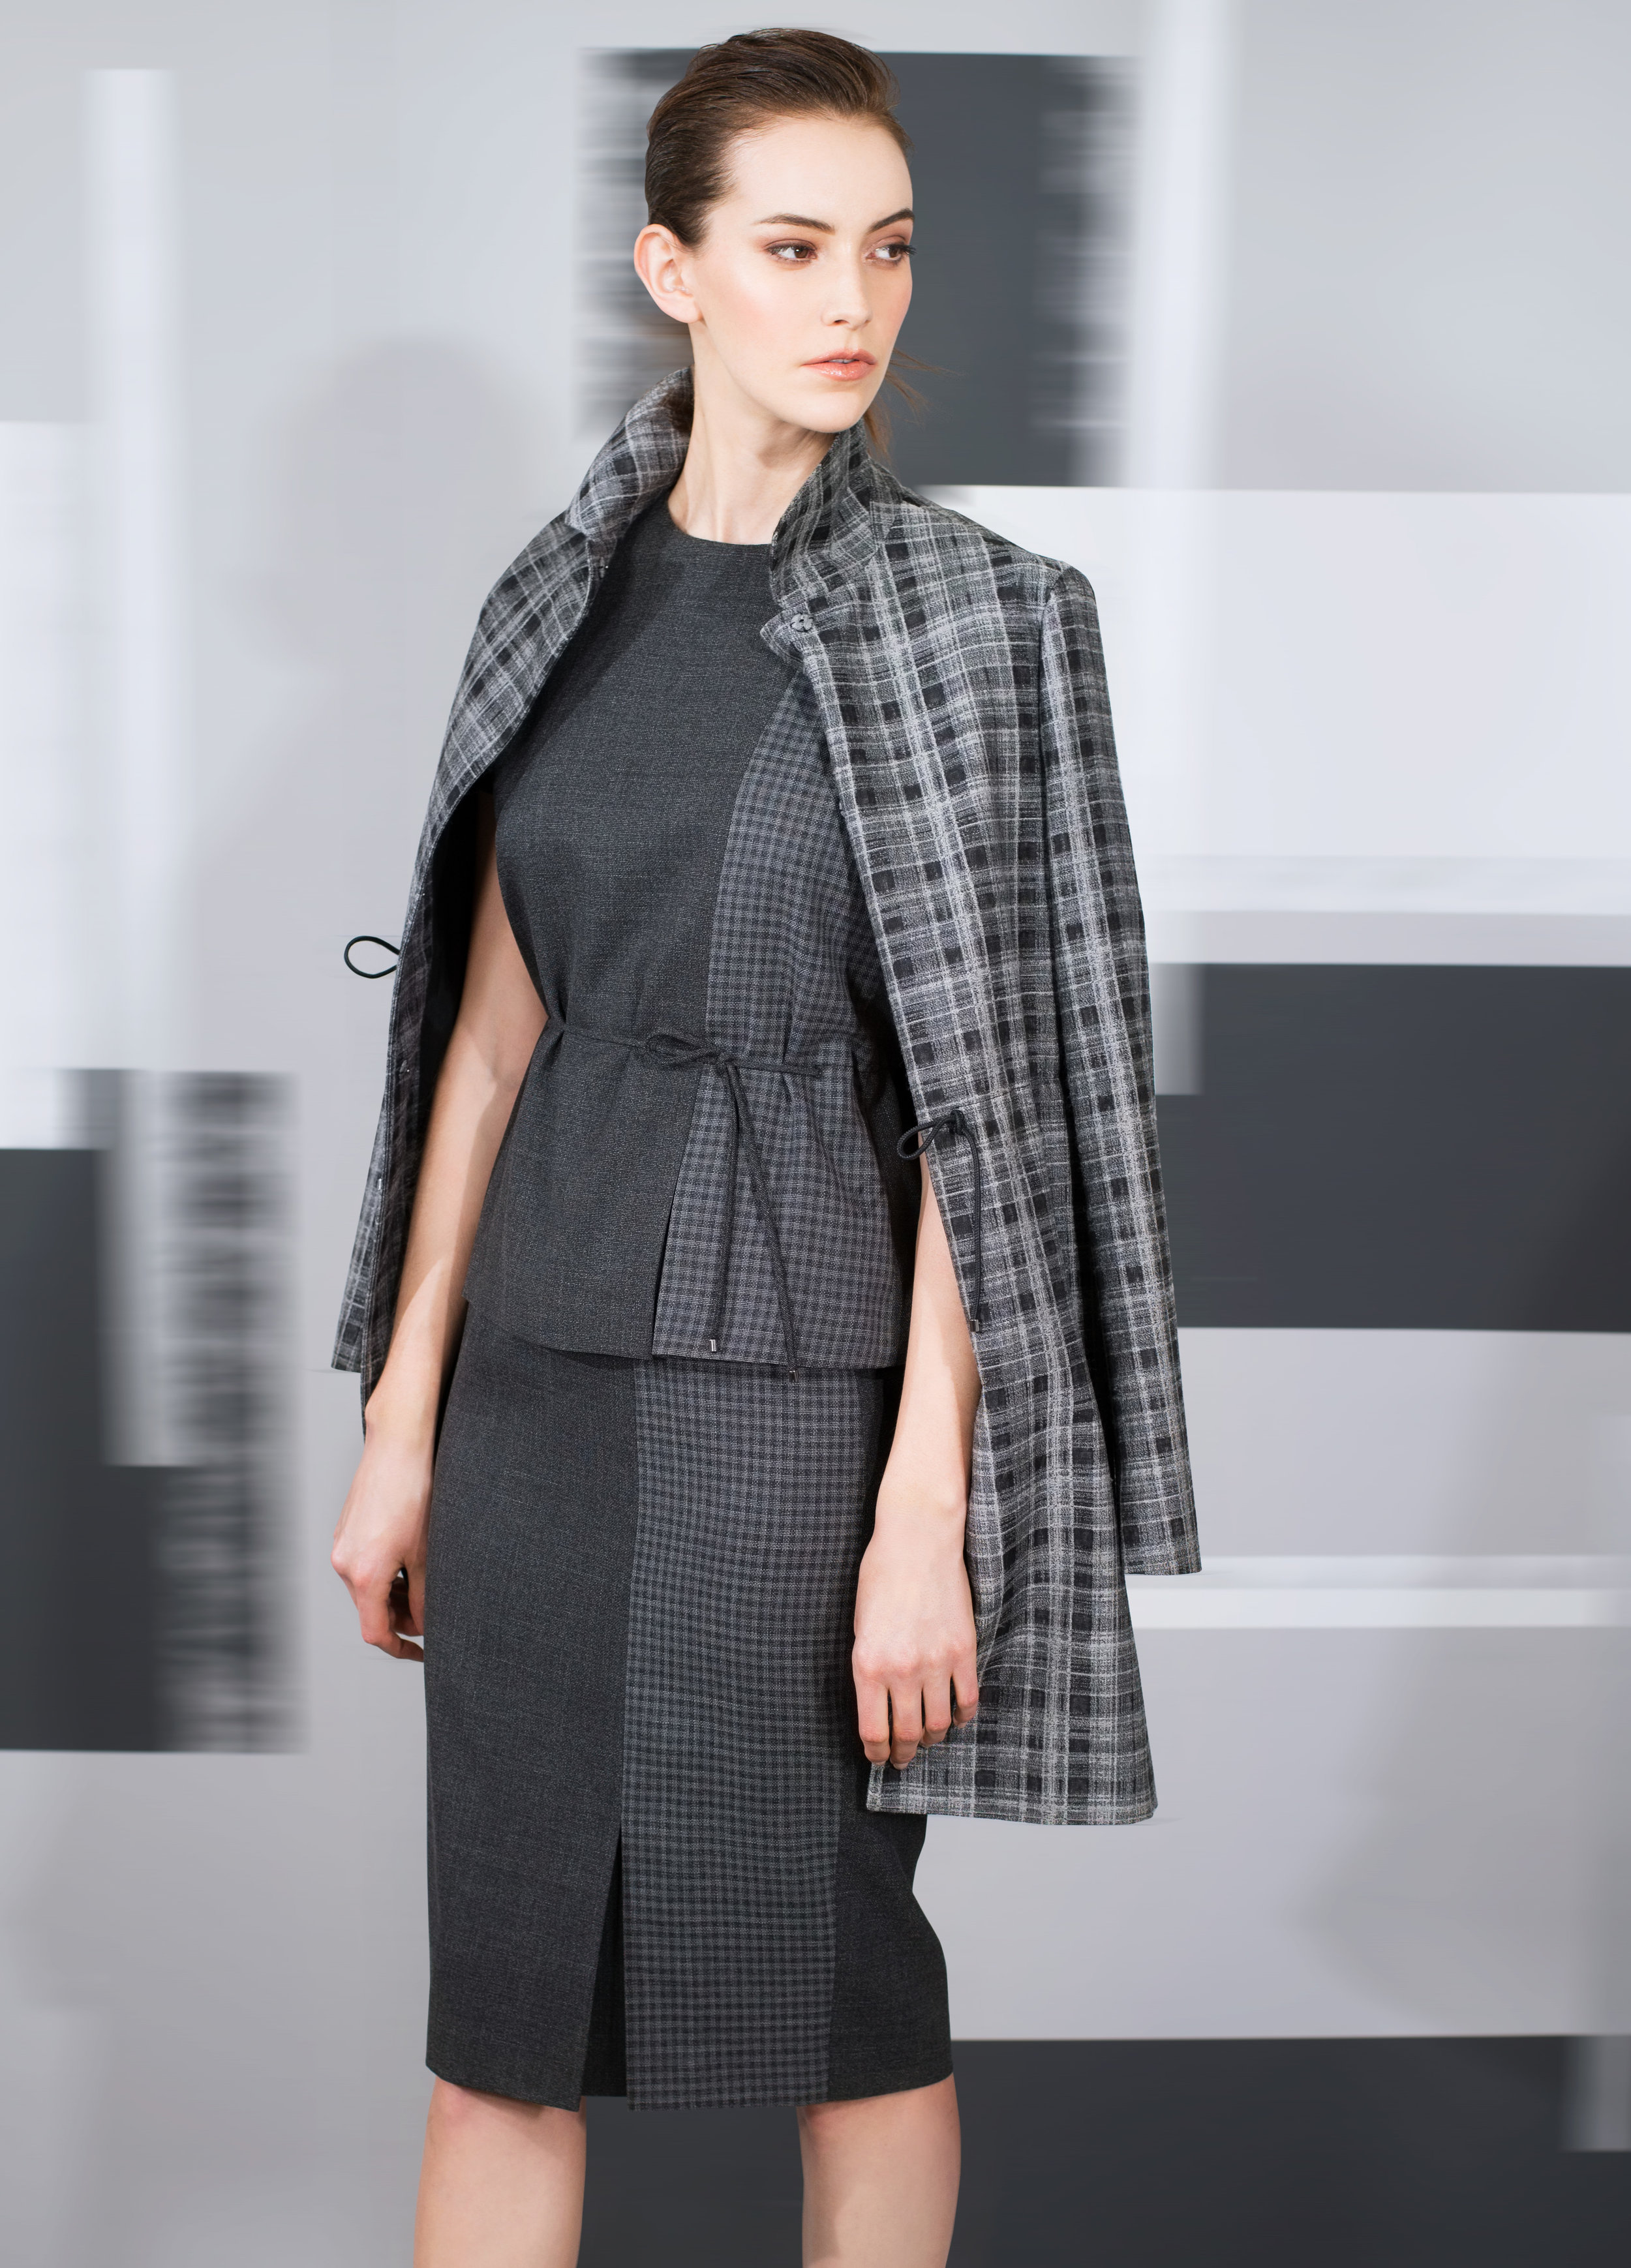 Plaid jacquard wool long jacket  black pearl   Voile fine wool with micro plaid front pleat top and skirt  black oyster indigo blue